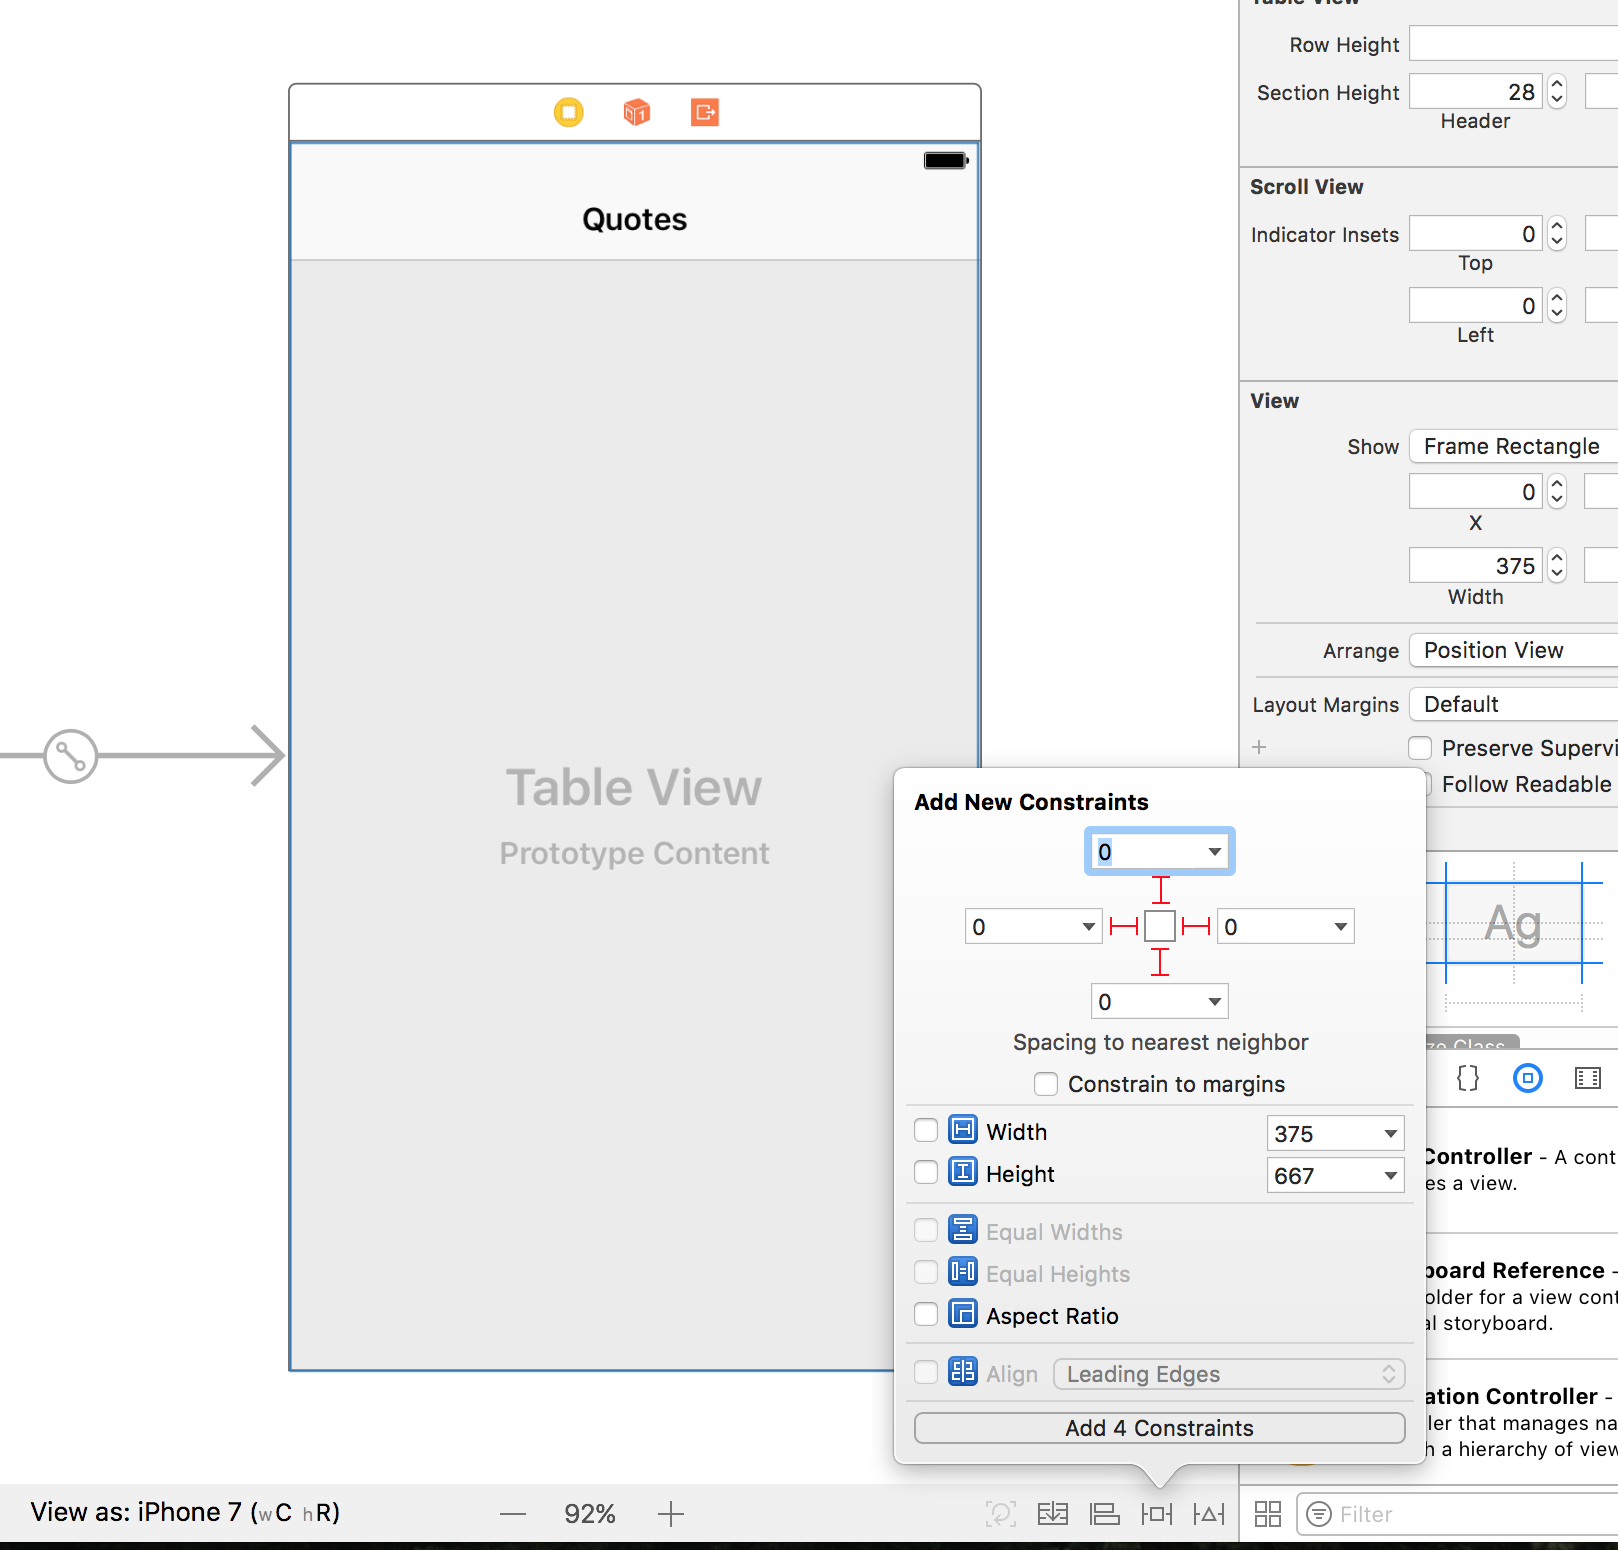 constraints to pin the table view to the edges of the view controller